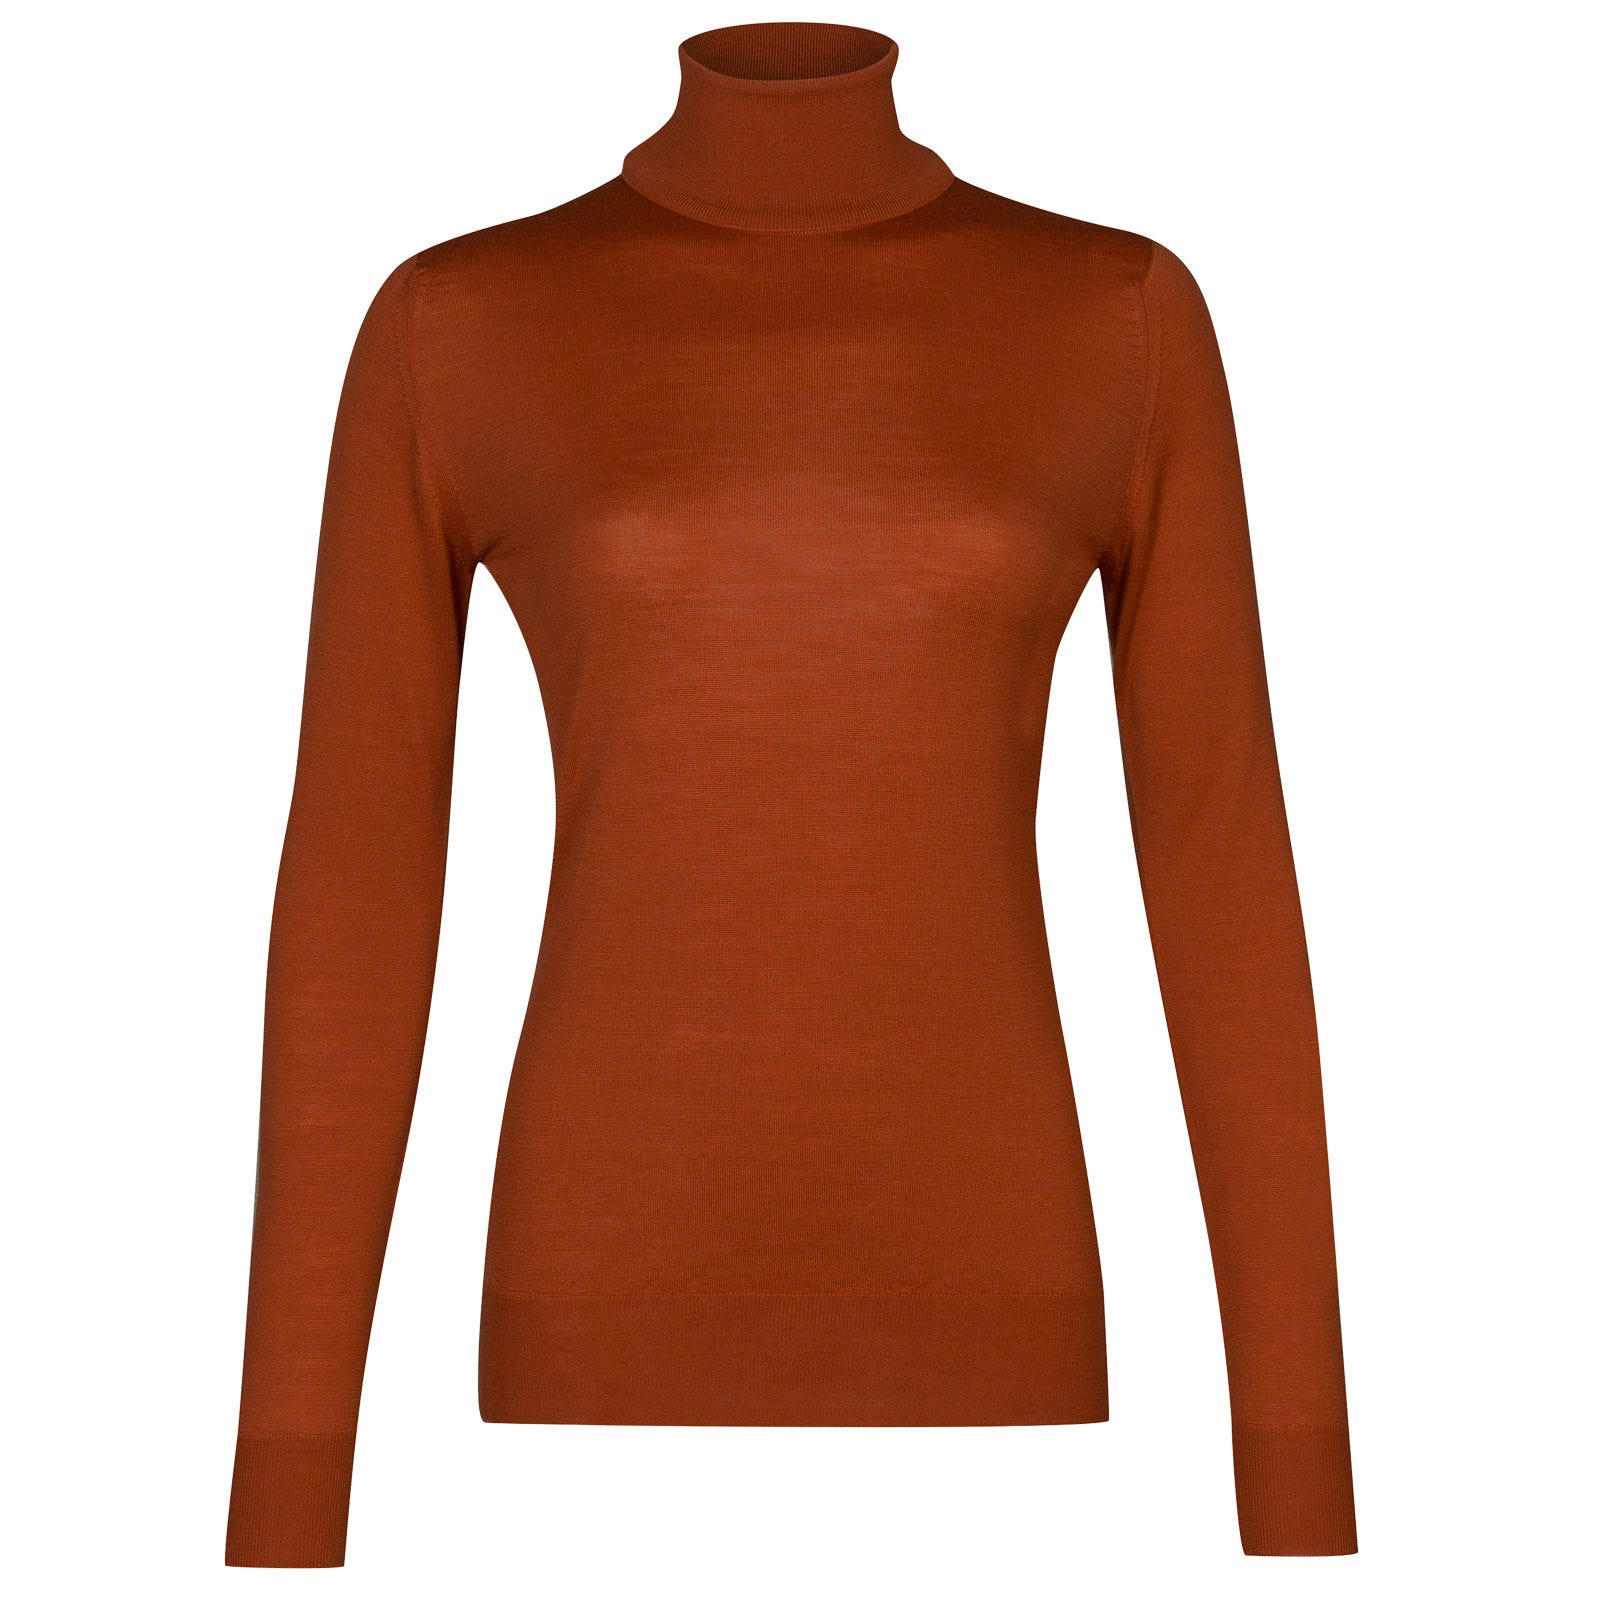 John Smedley Catkin Merino Wool Sweater in Flare Orange-XL